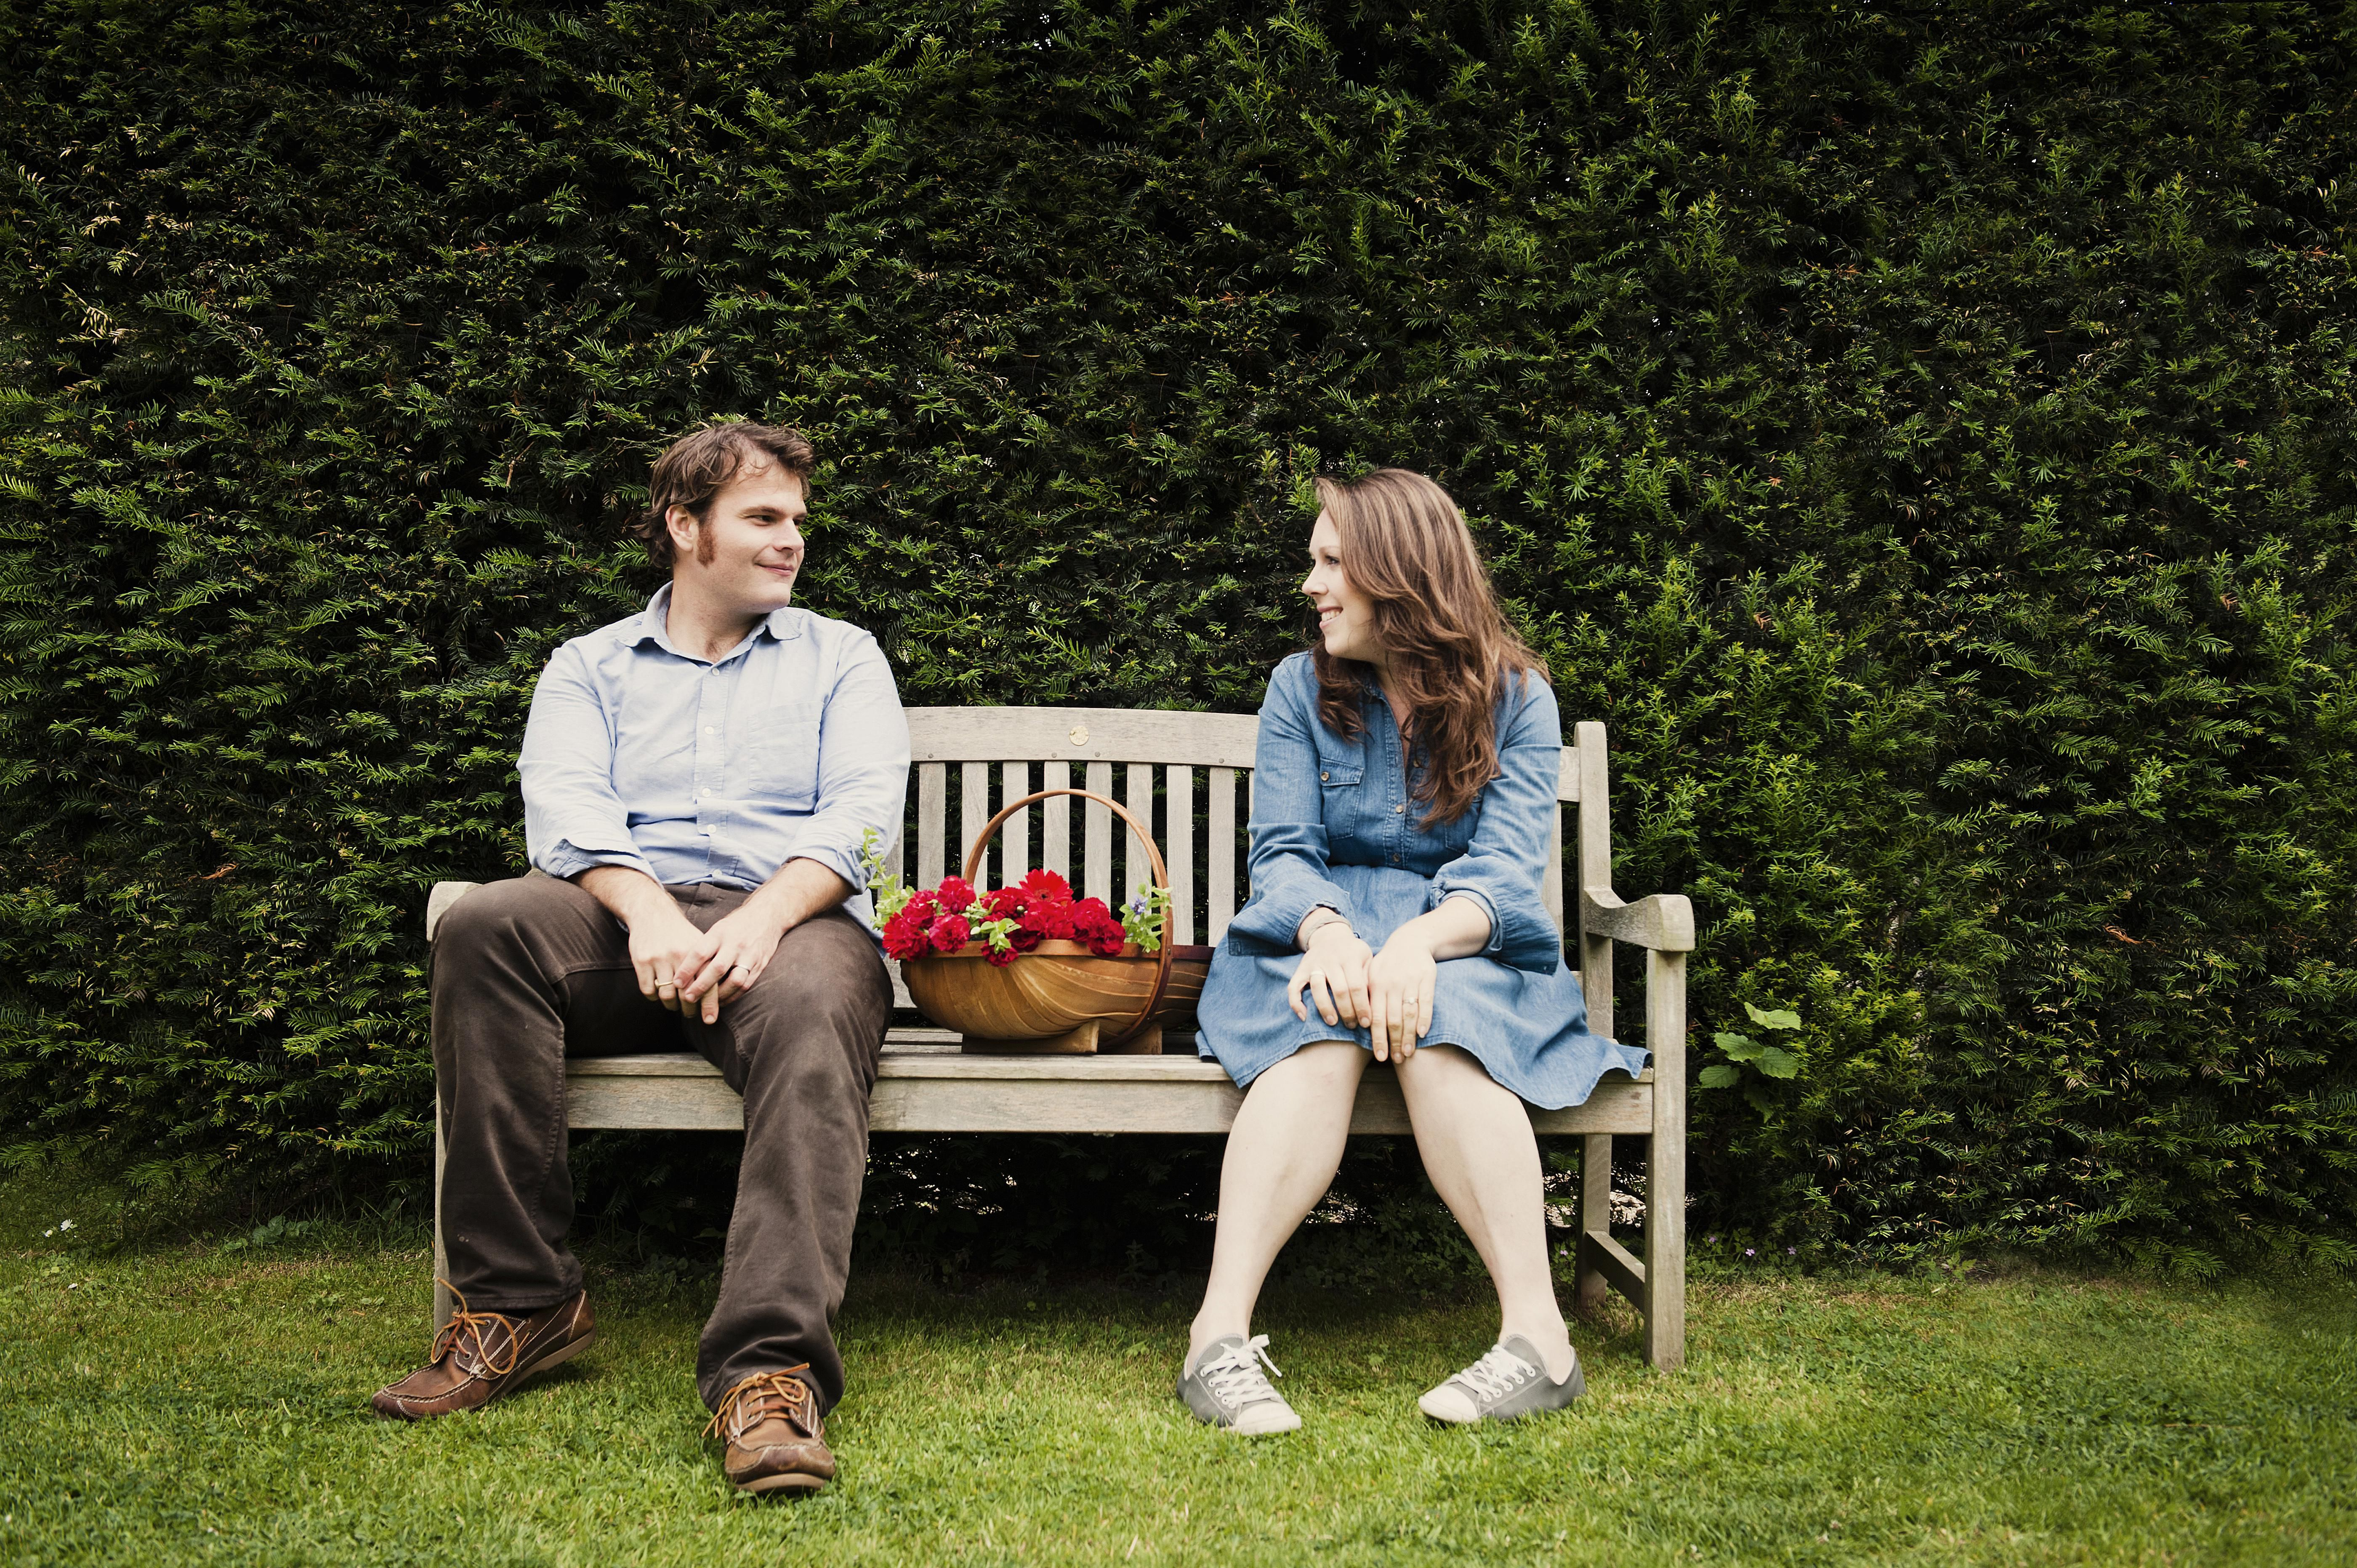 Couple chatting on a park bench